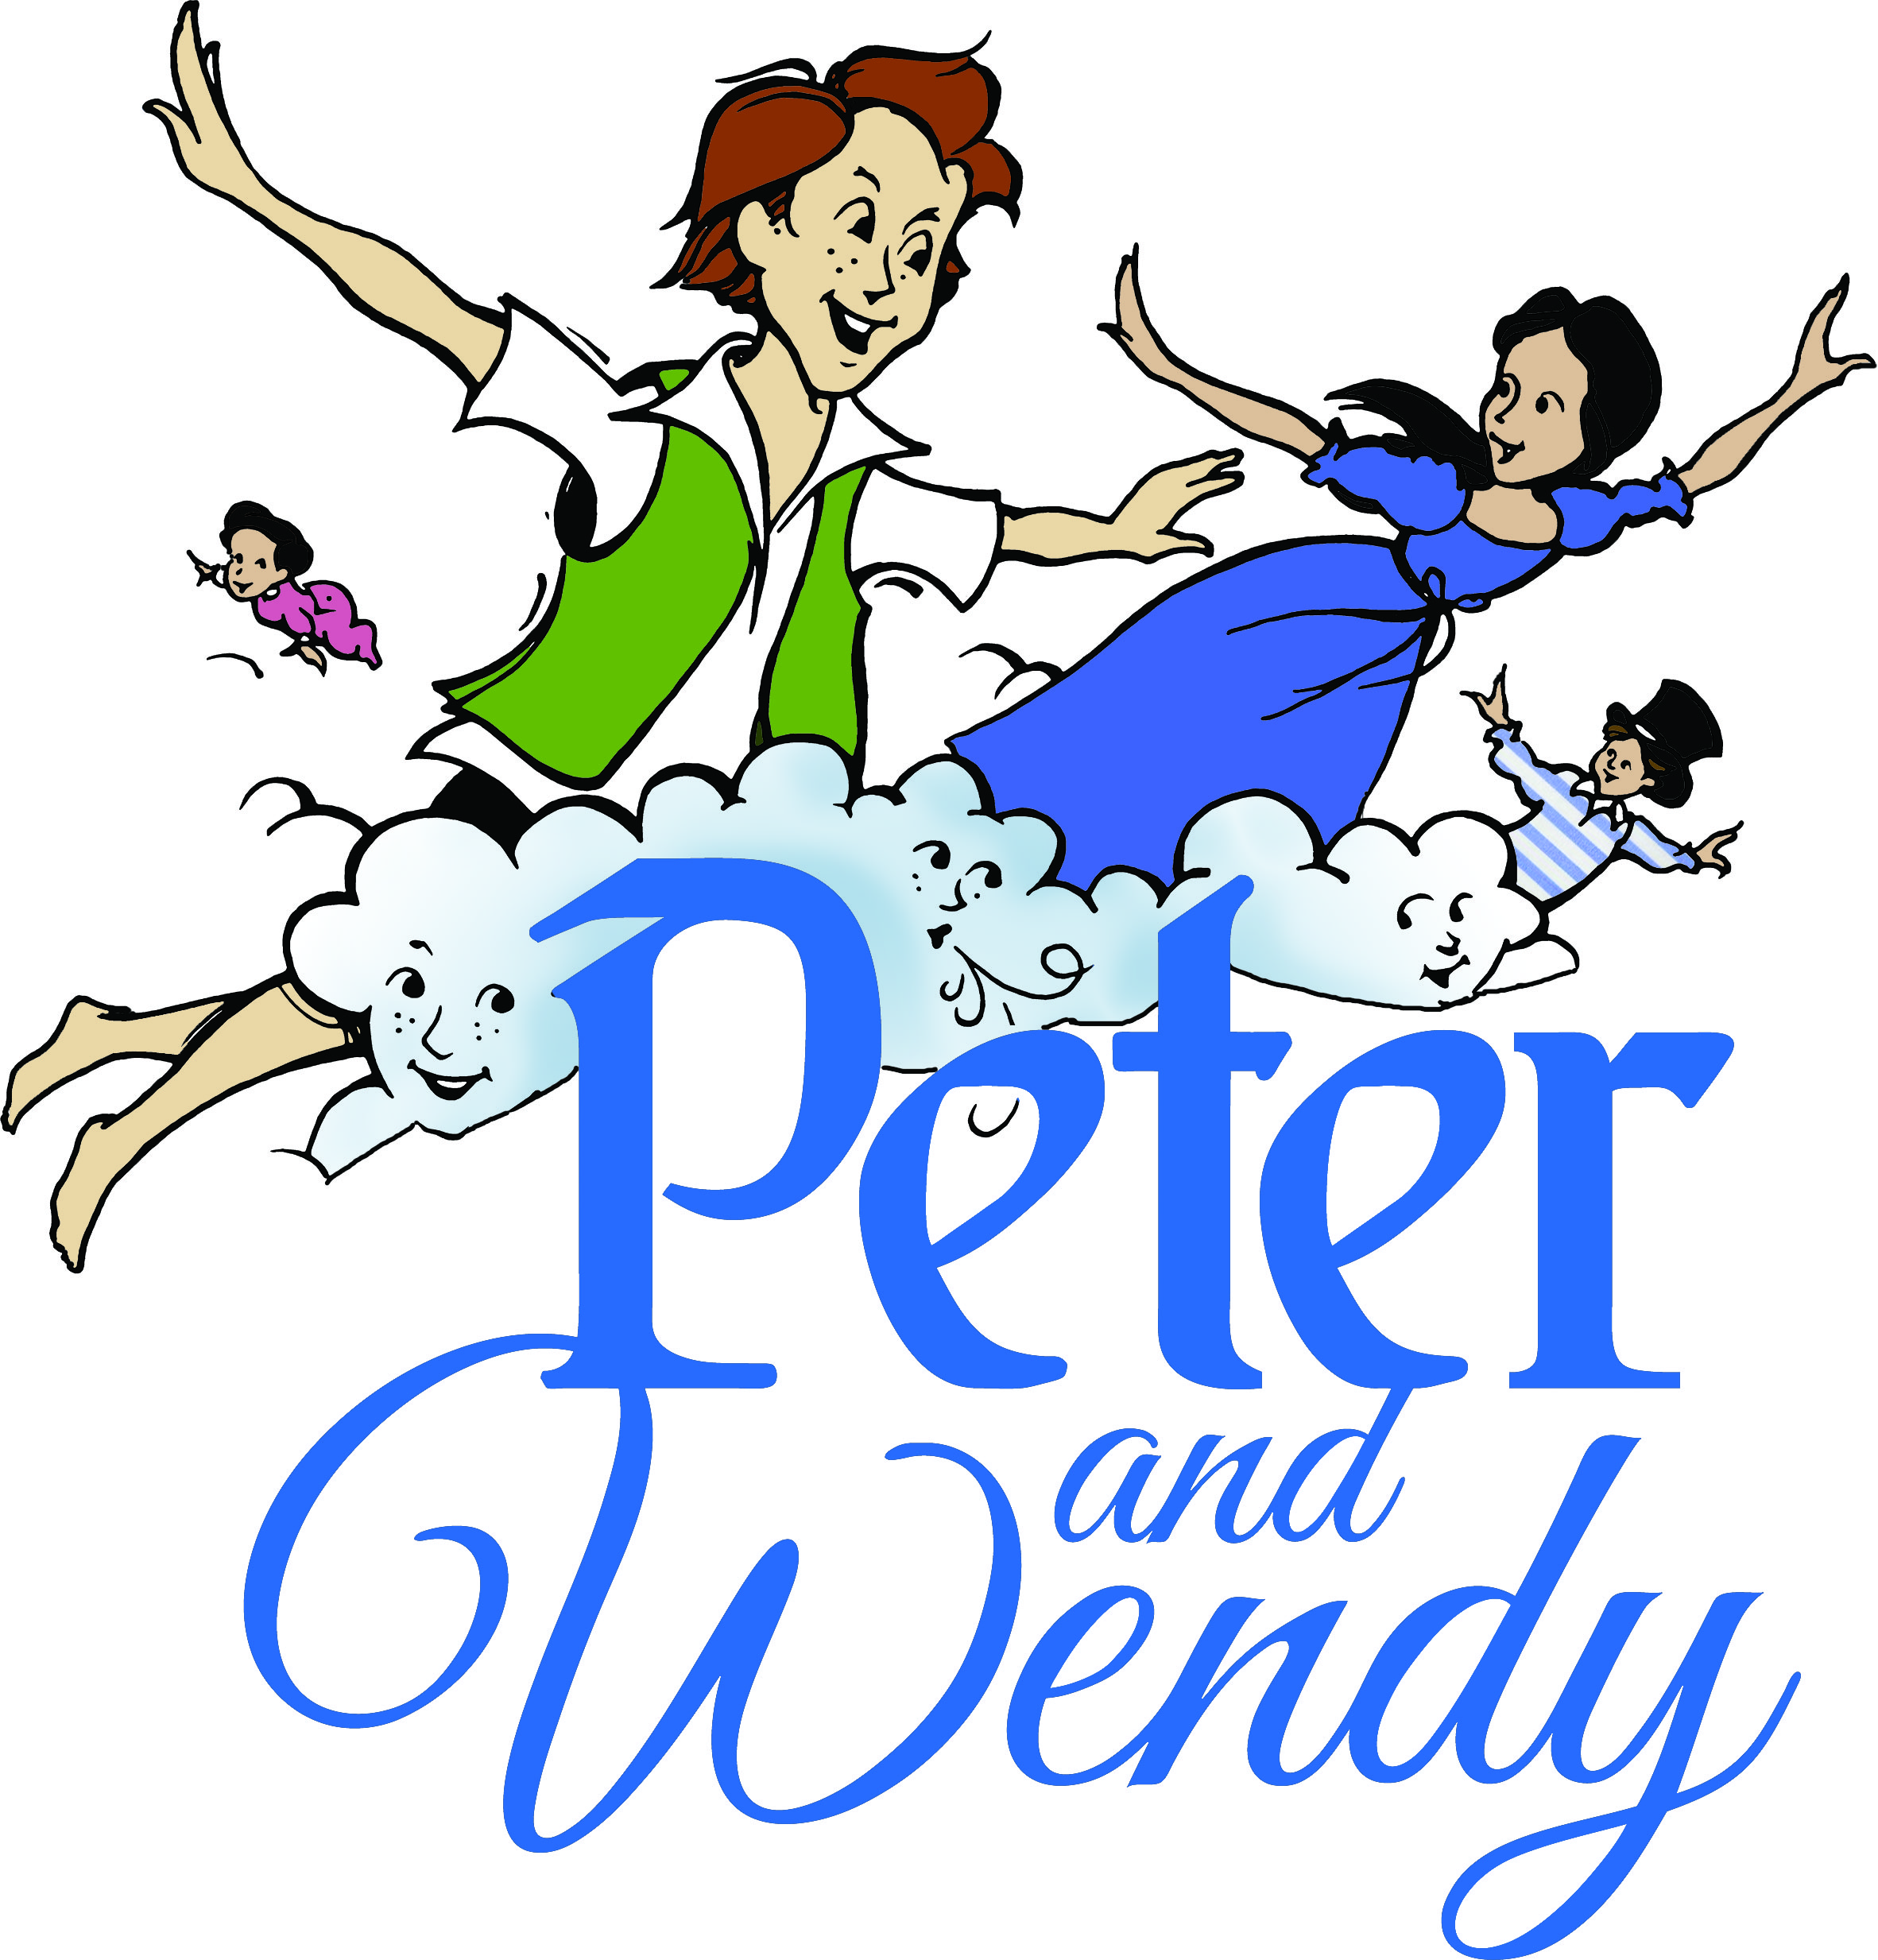 Join Peter, Wendy, Captain Hook and many more this Friday, November 11th at 7:30 pm at the Clinton County Learning Center for a fanciful flight to Neverland and back when the Missoula Children's Theatre and more than 50 local students present an original musical adaptation of PETER AND WENDY.